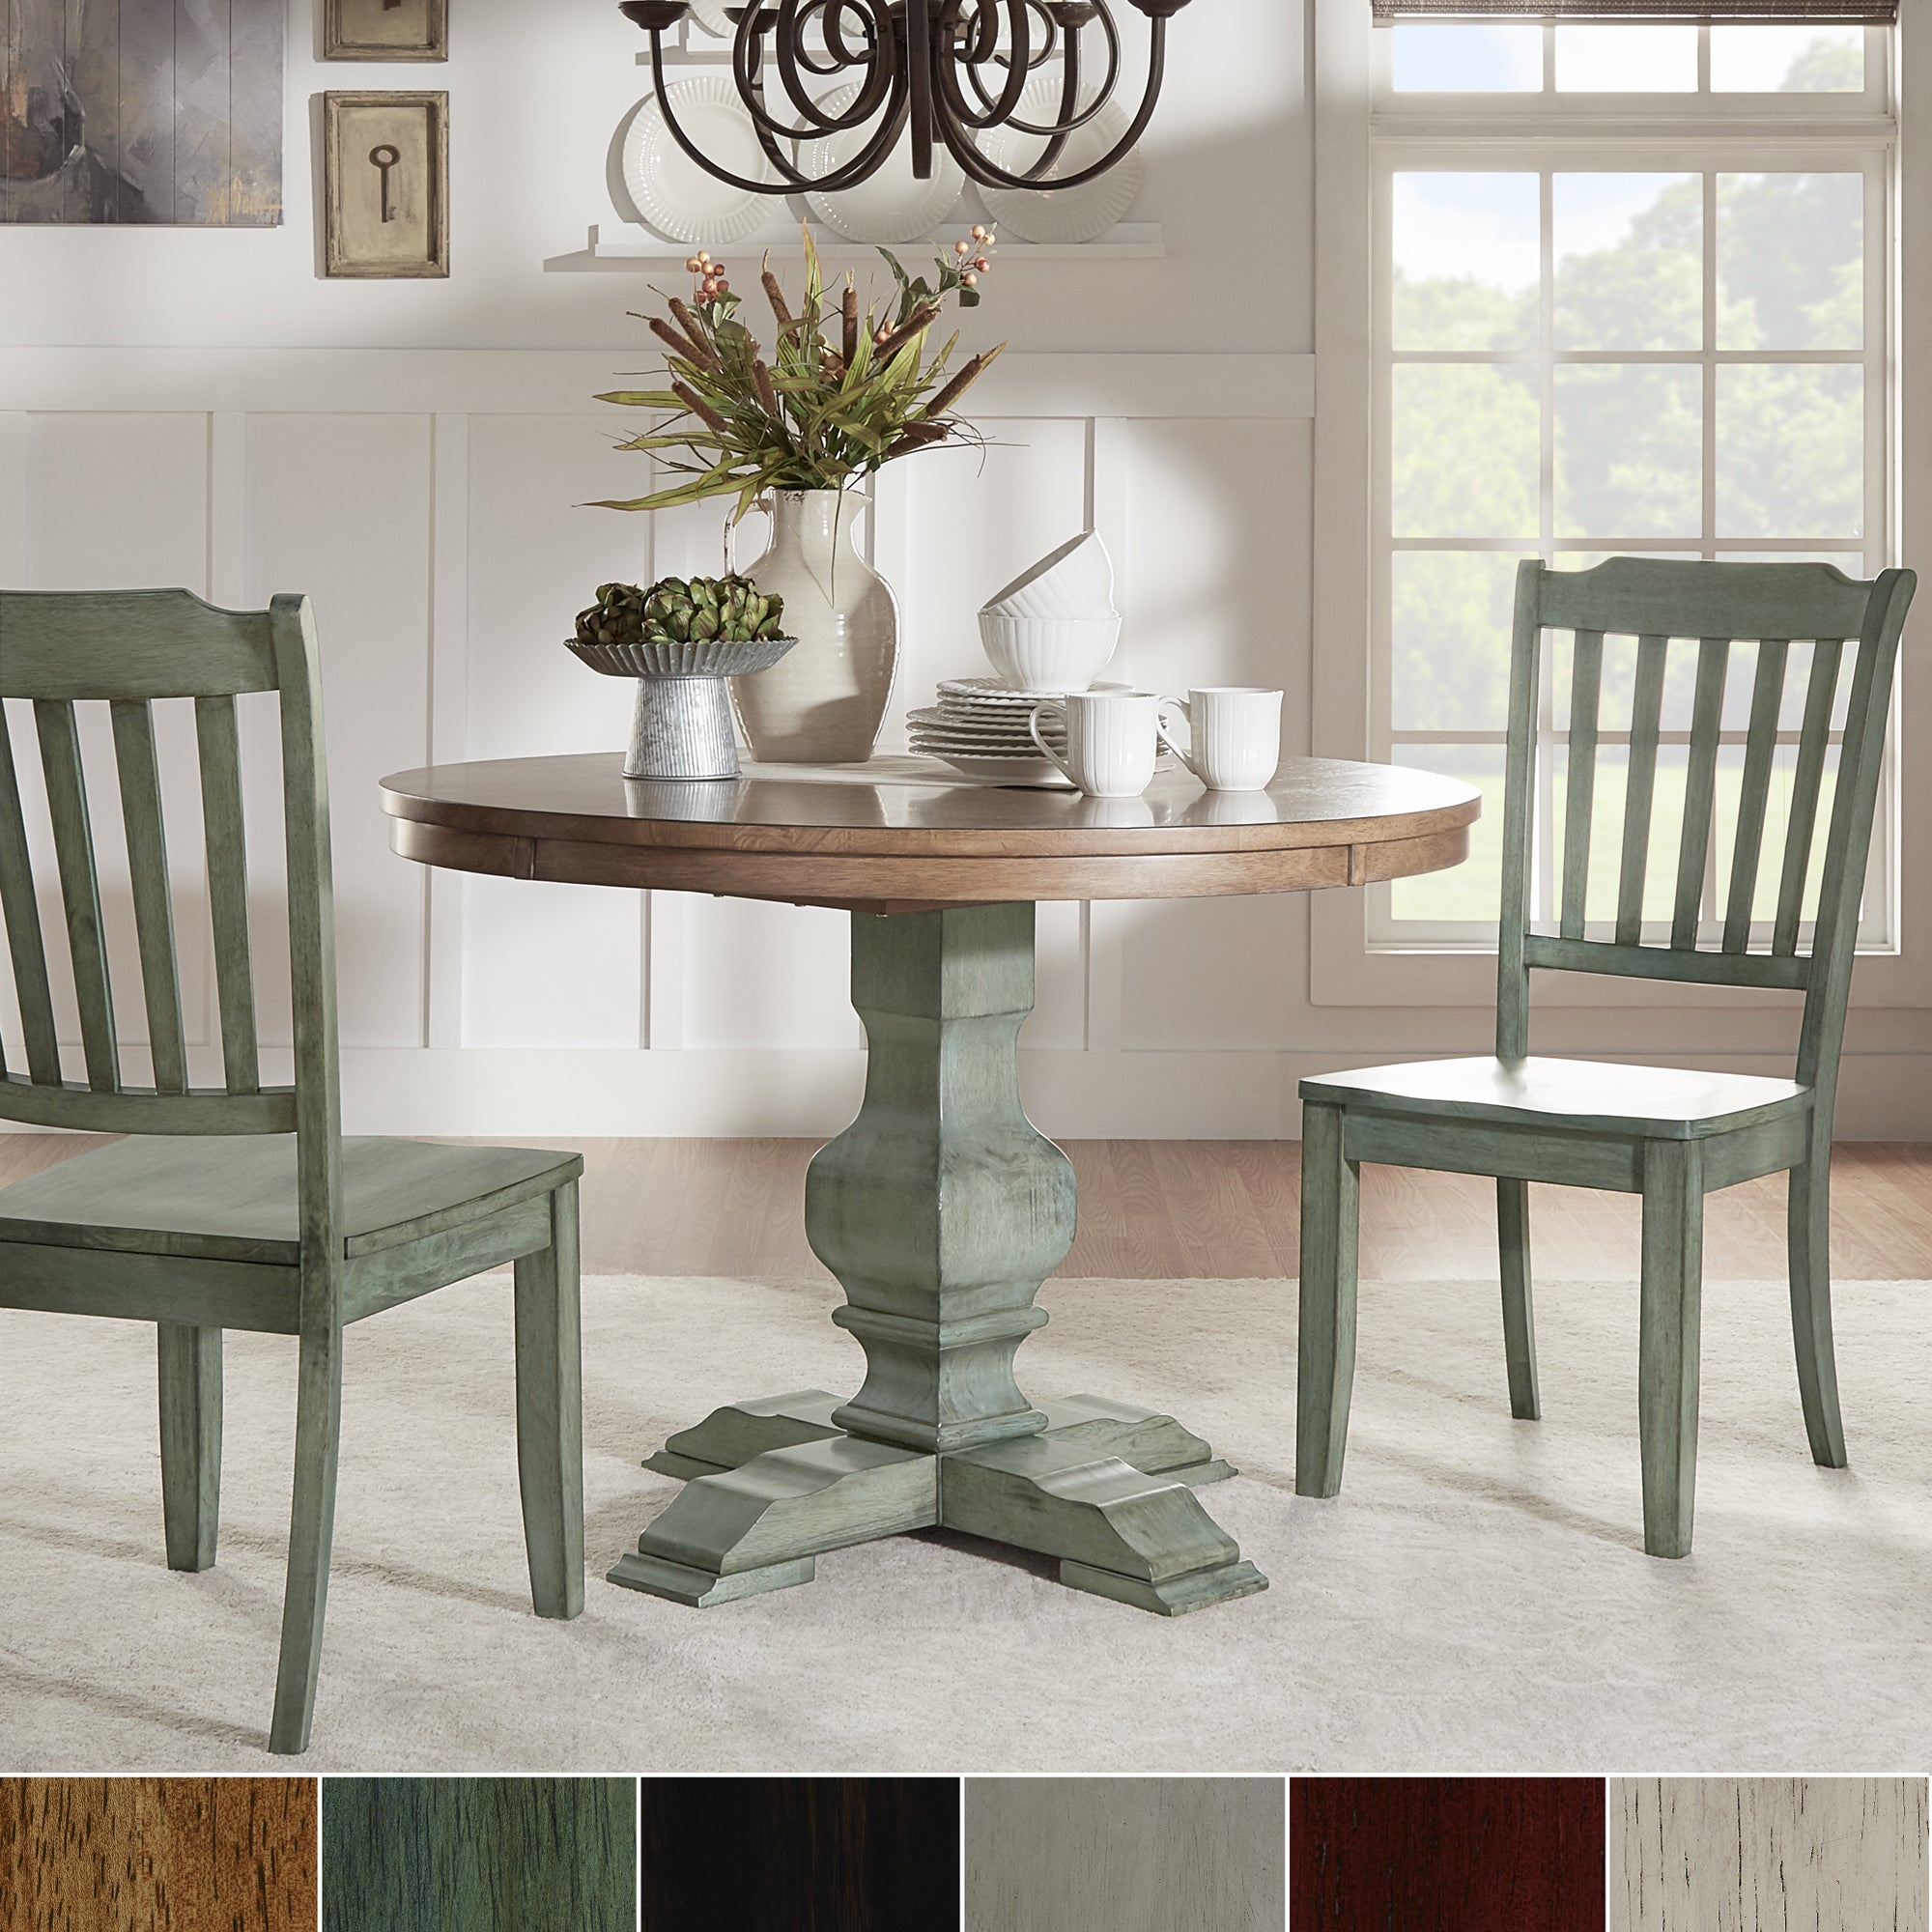 Eleanor Oak And Antique Sage Green Wood 3 Piece Round Table And Slat Back Dining Set By Inspire Q Classic Overstock 13848838